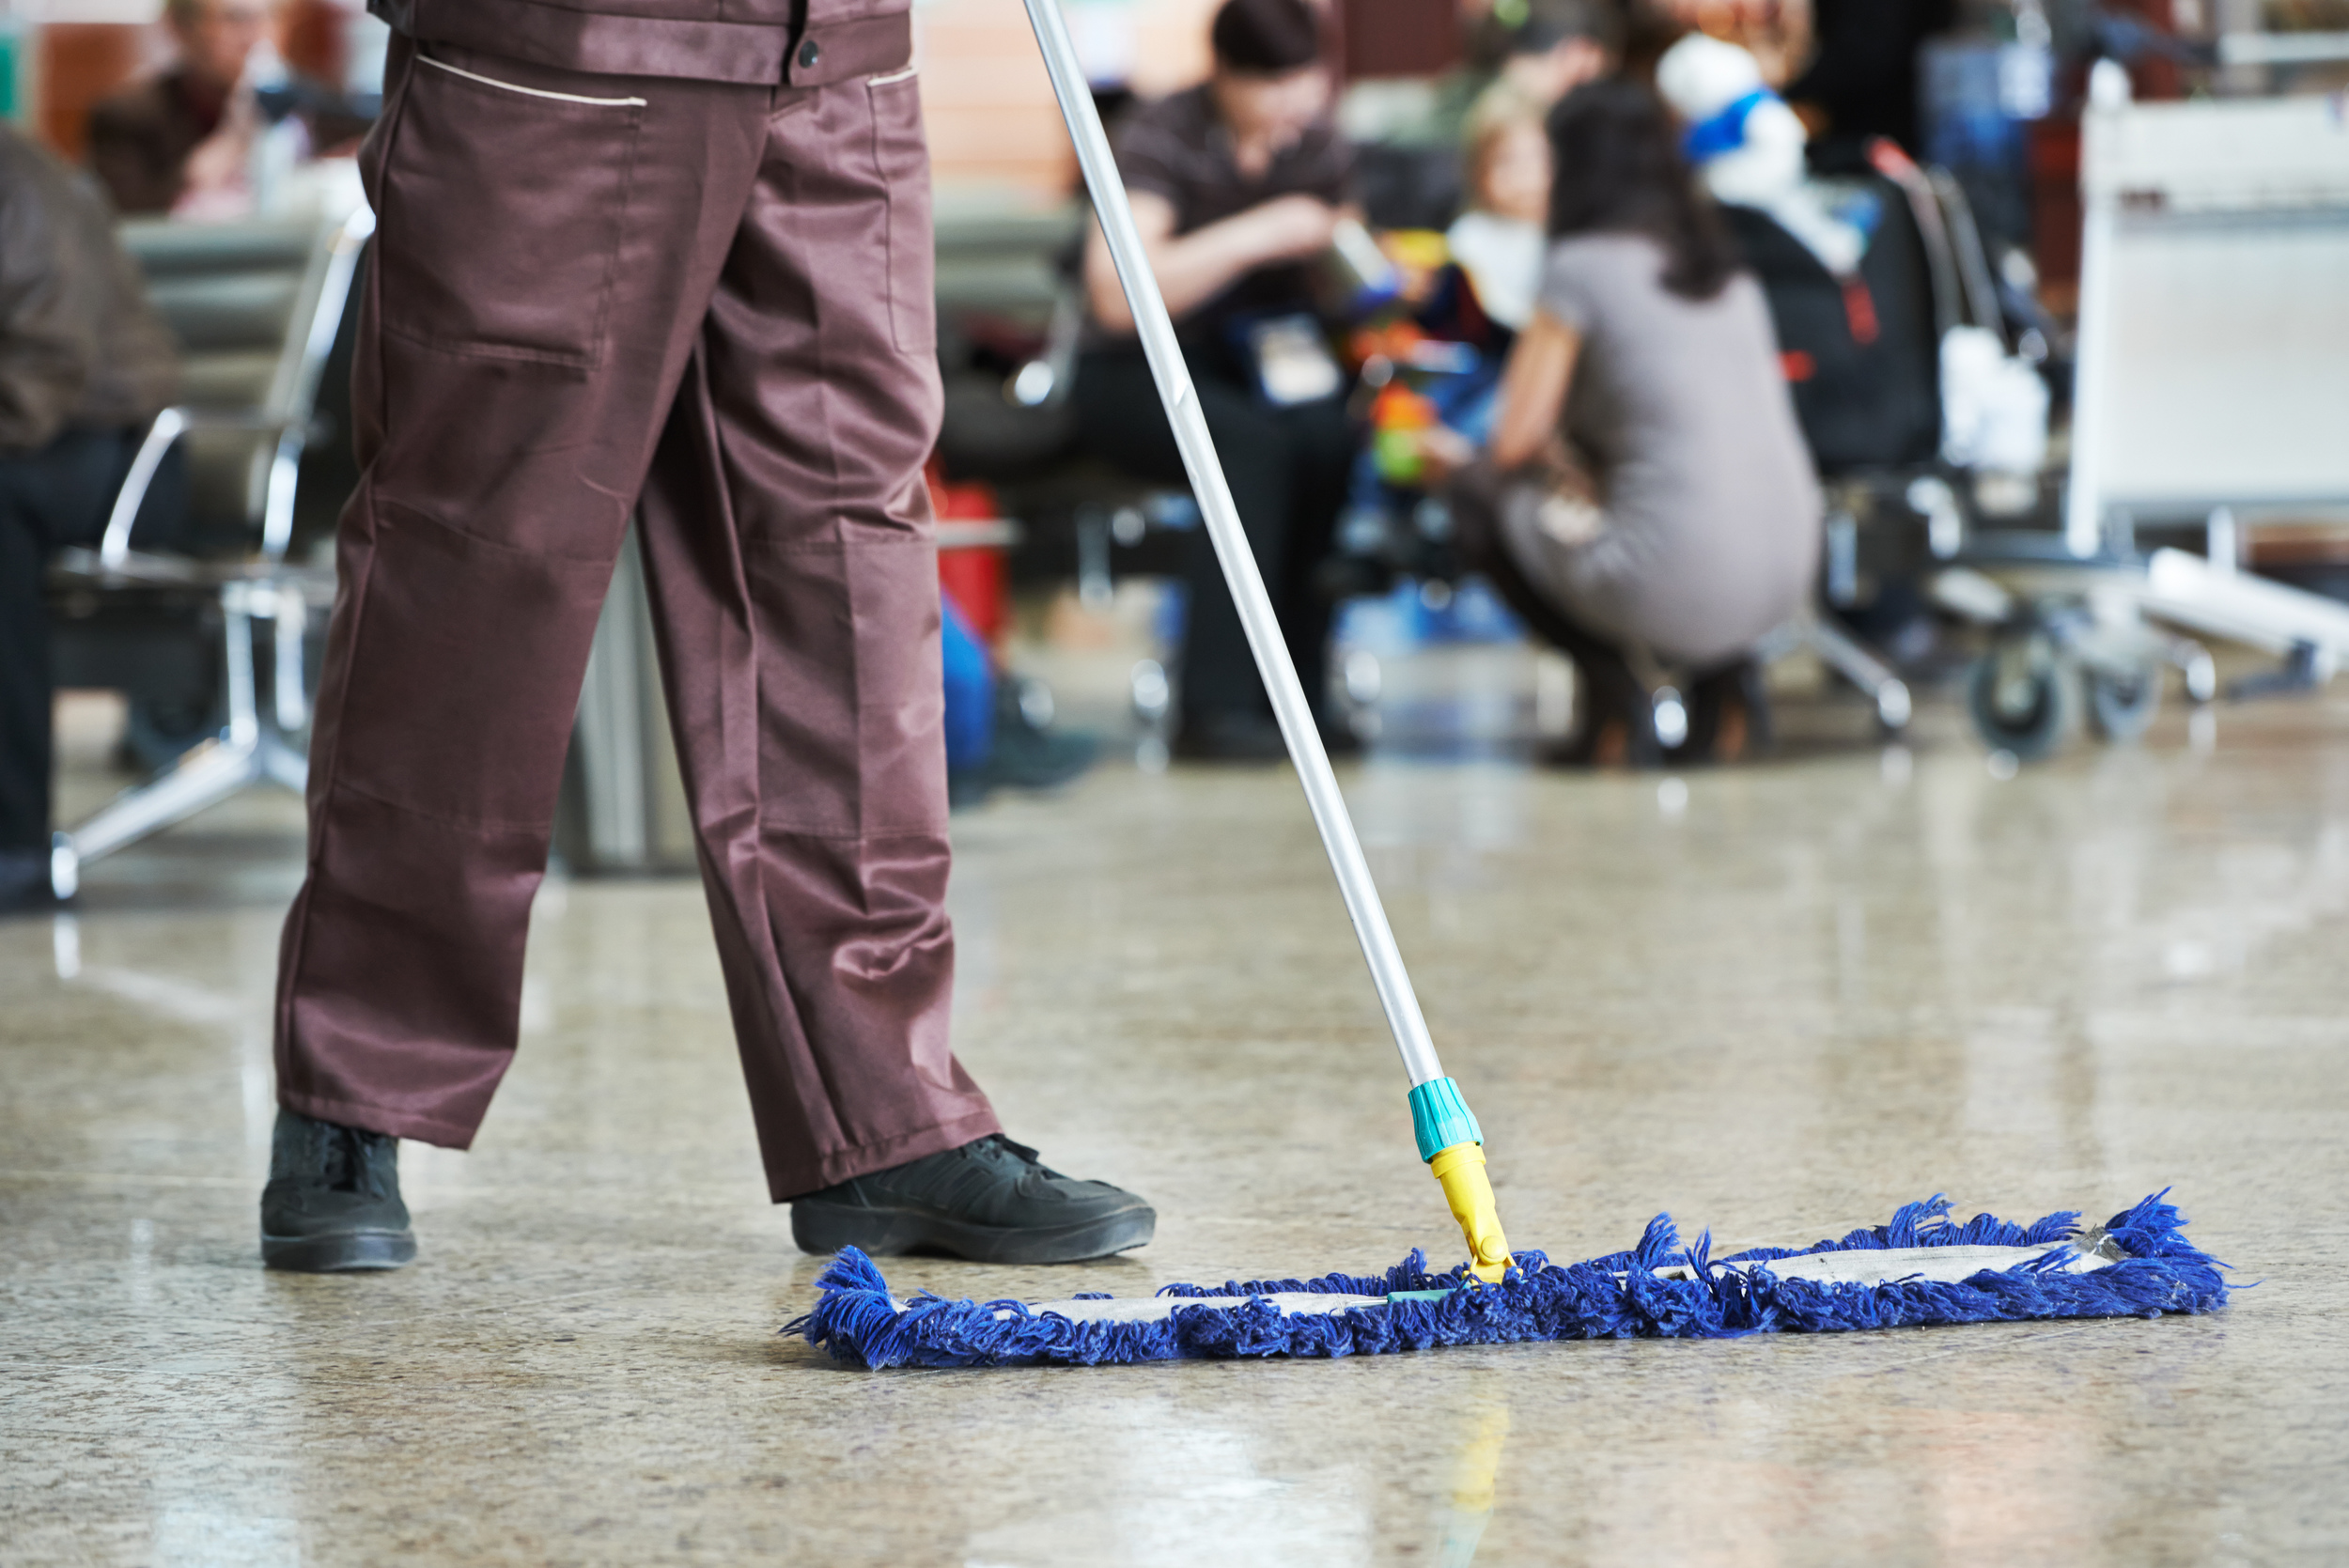 stock-photo-cleaner-with-mop-and-uniform-cleaning-hall-floor-of-public-business-building-164713328 (1).jpg